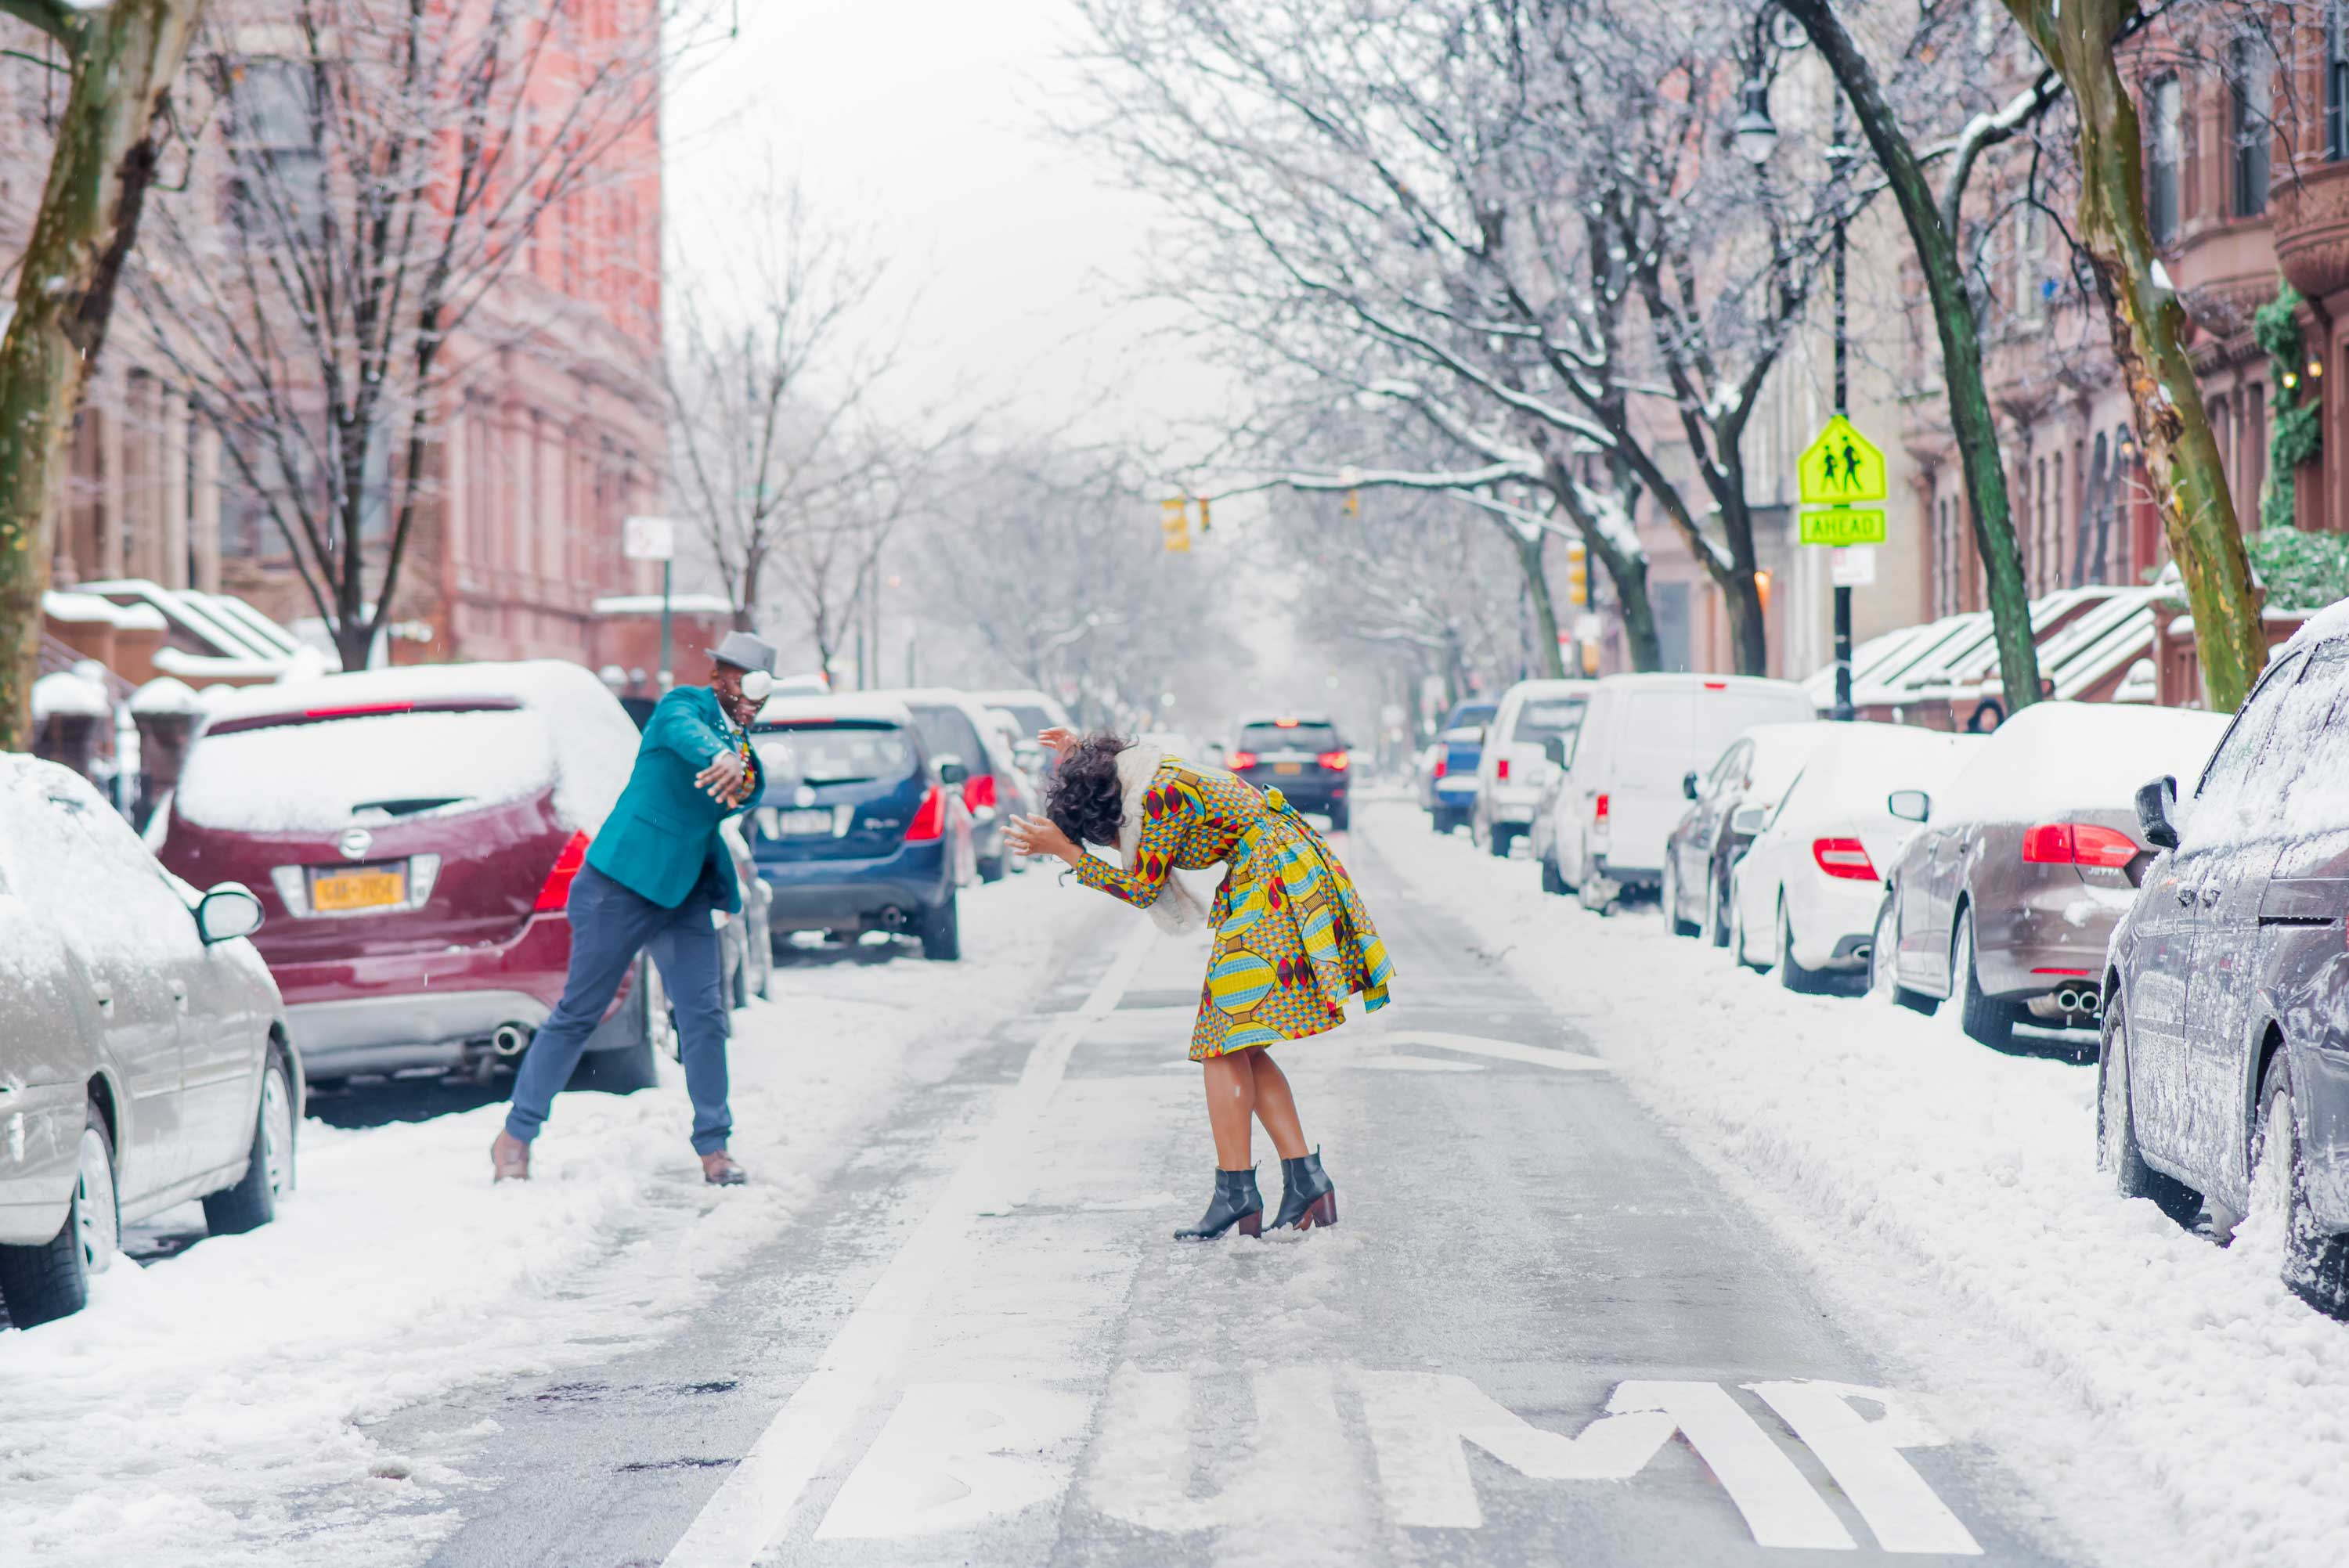 Snowball fight in New York City neighborhood snowy engagement photo session